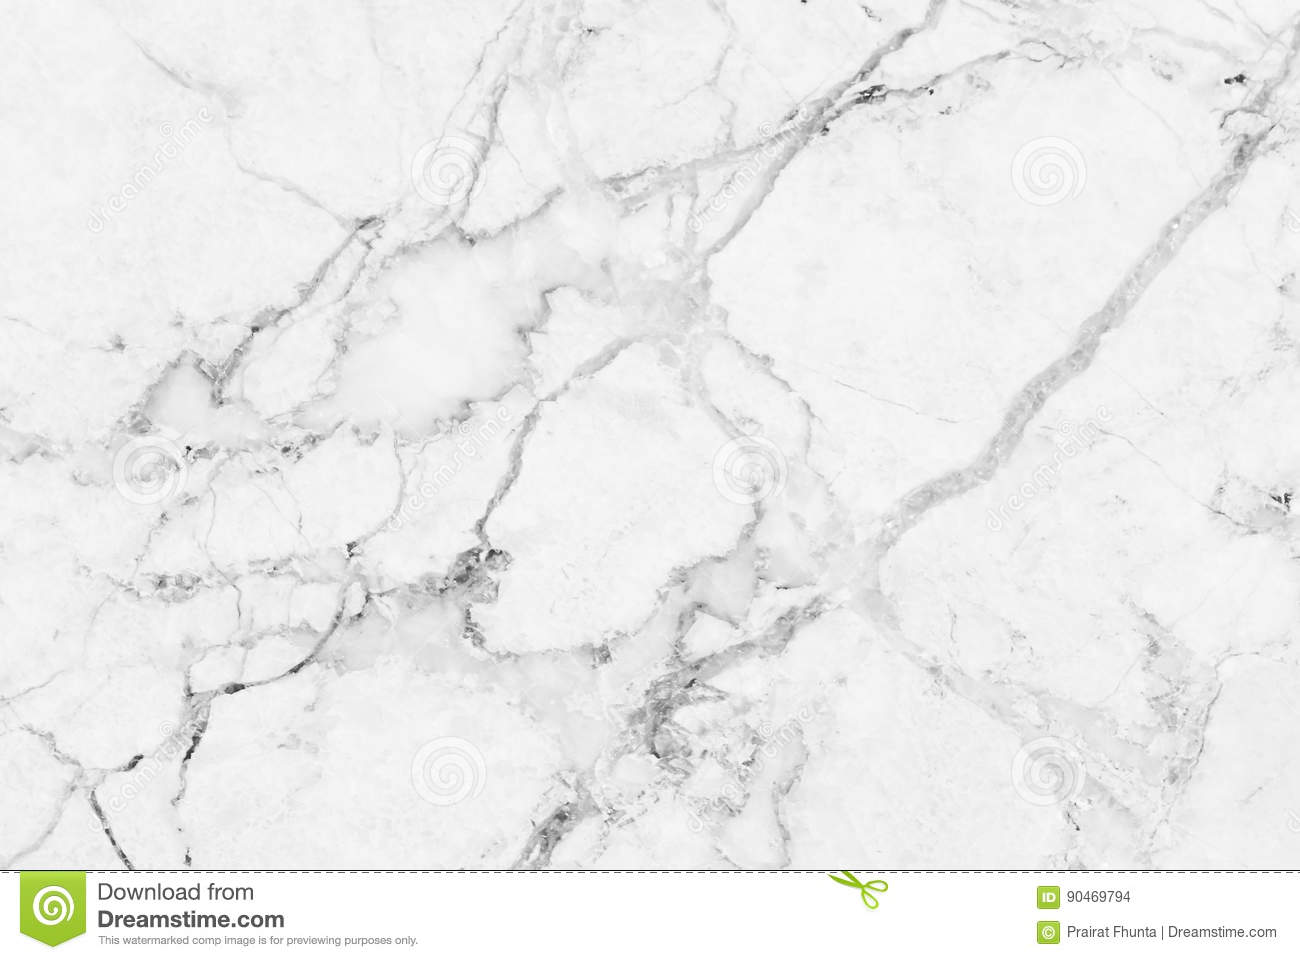 Must see Wallpaper Marble Case - white-marble-texture-pattern-skin-tile-wallpaper-luxurious-background-detailed-genuine-nature-90469794  Snapshot_524935.jpg